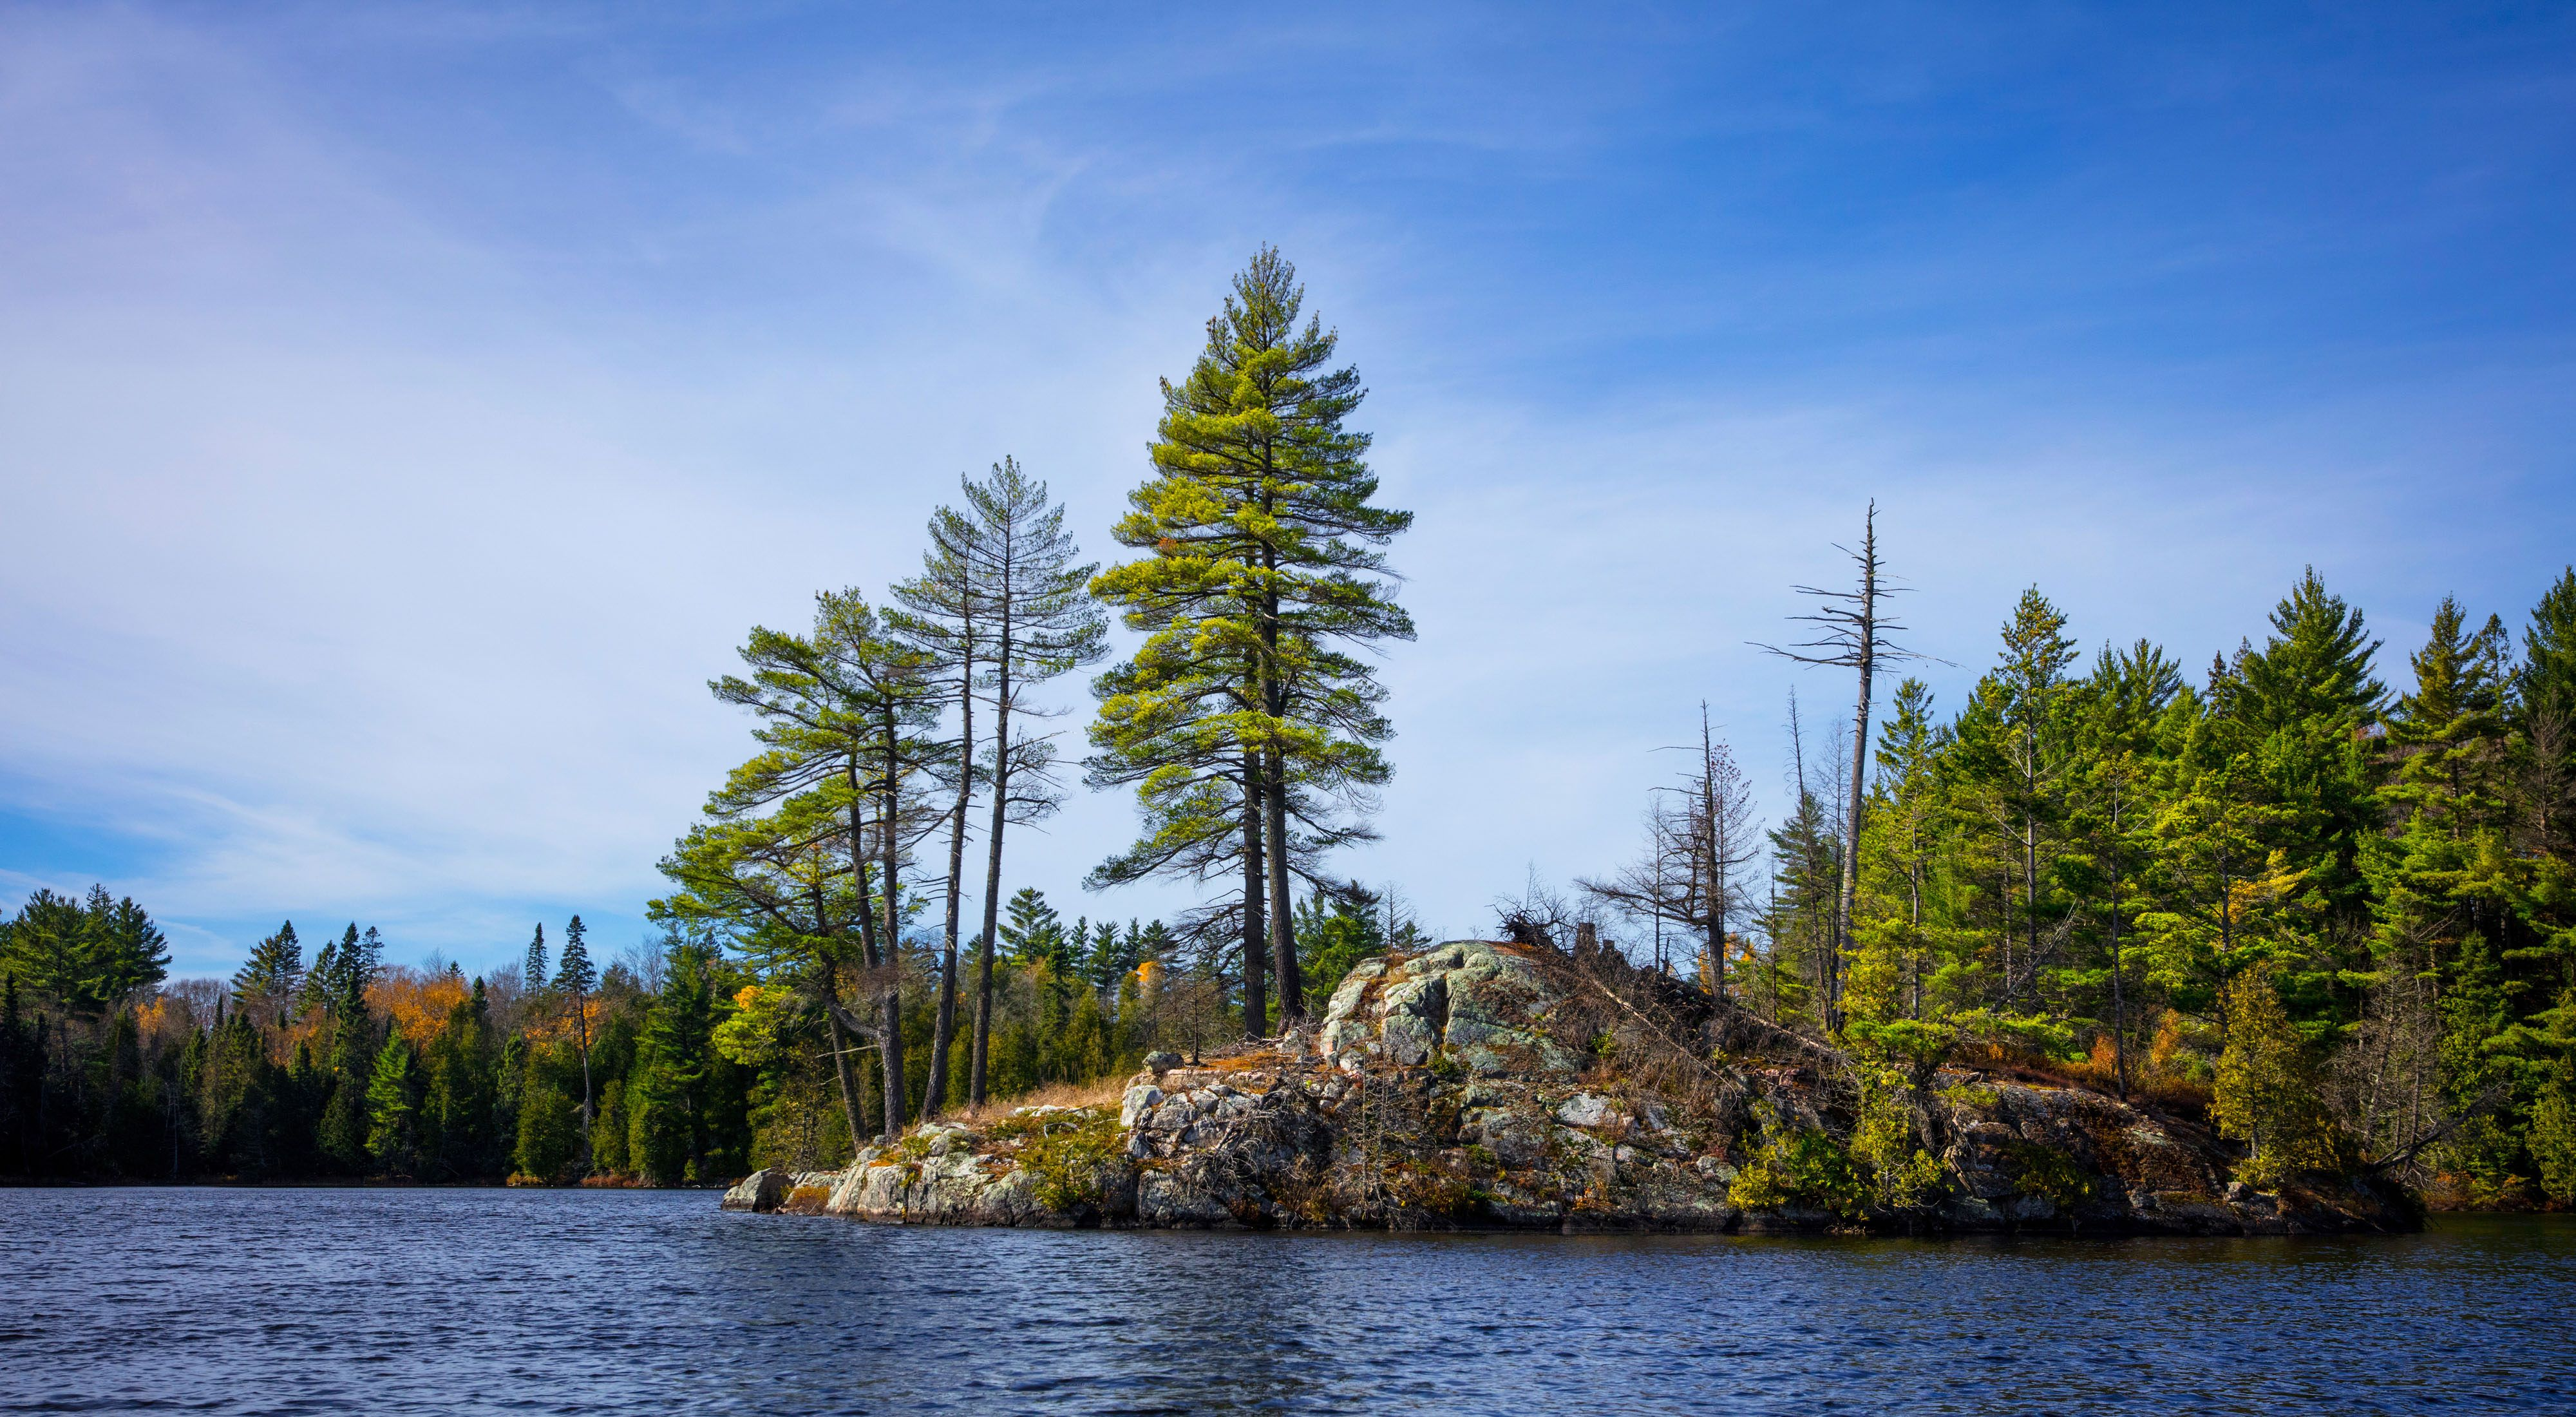 Photo of a lake and rocky, forested shoreline in background.